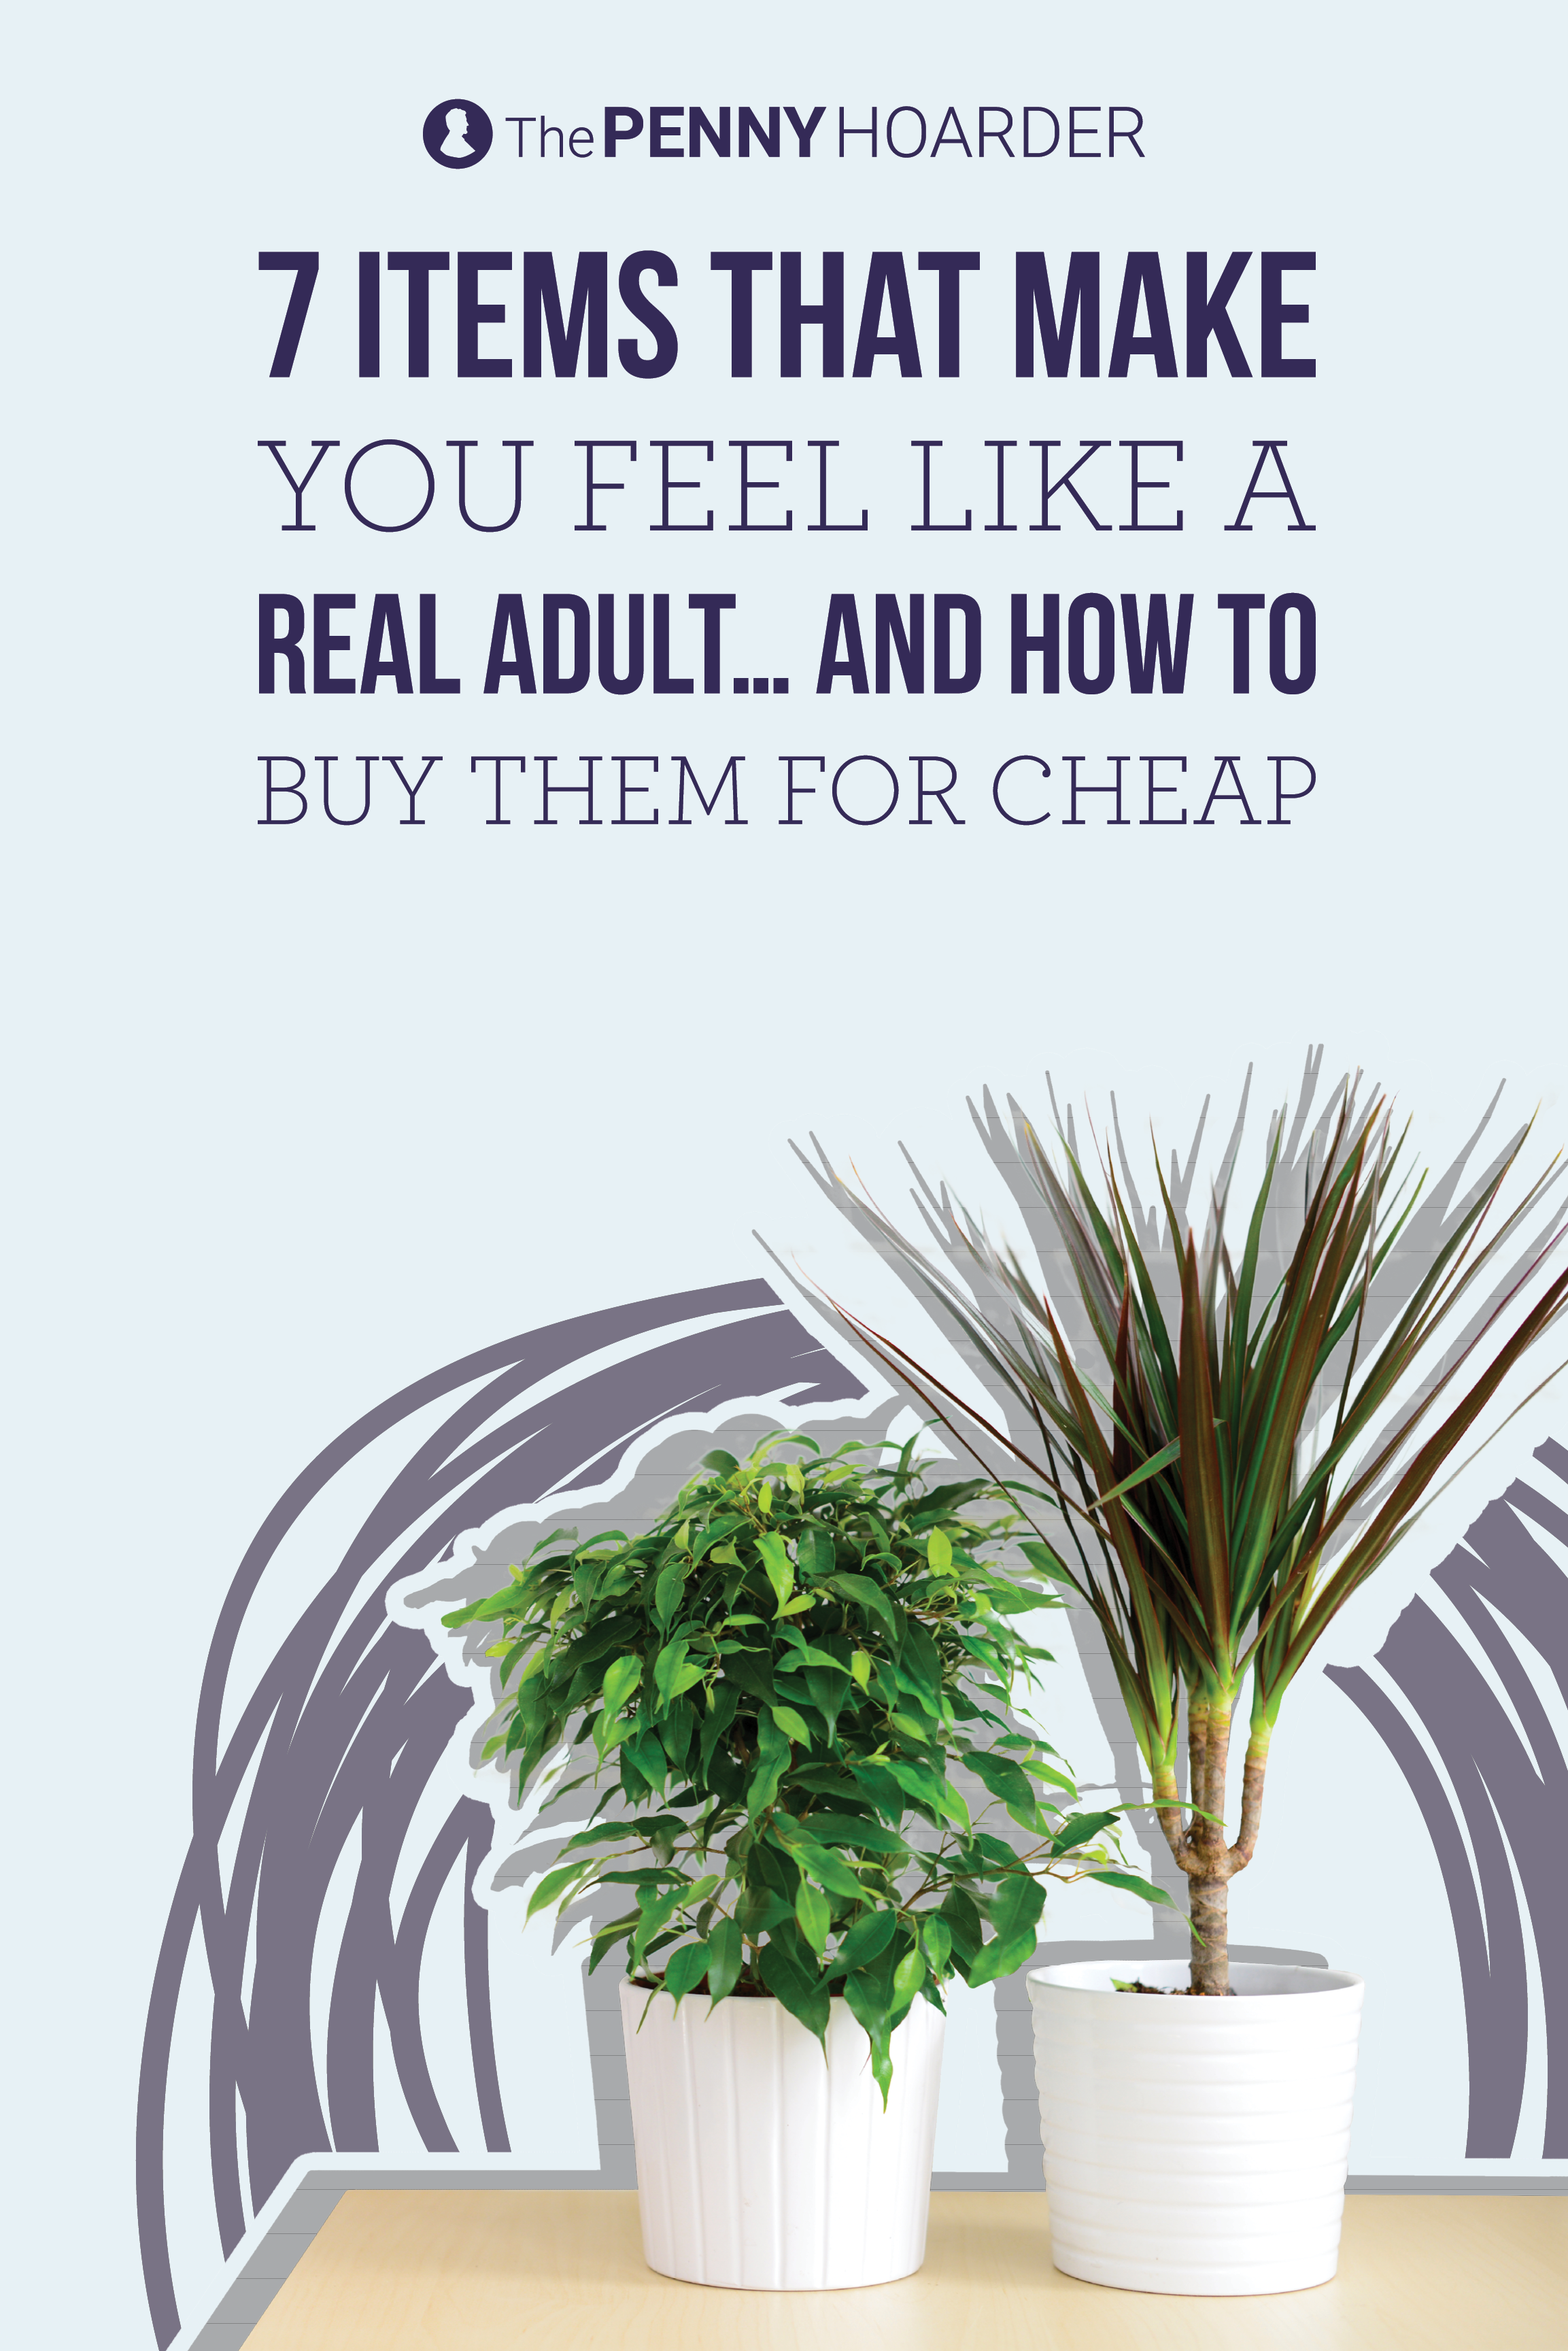 7 Items That Make You Feel Like a Real Adult… and How to Buy Them